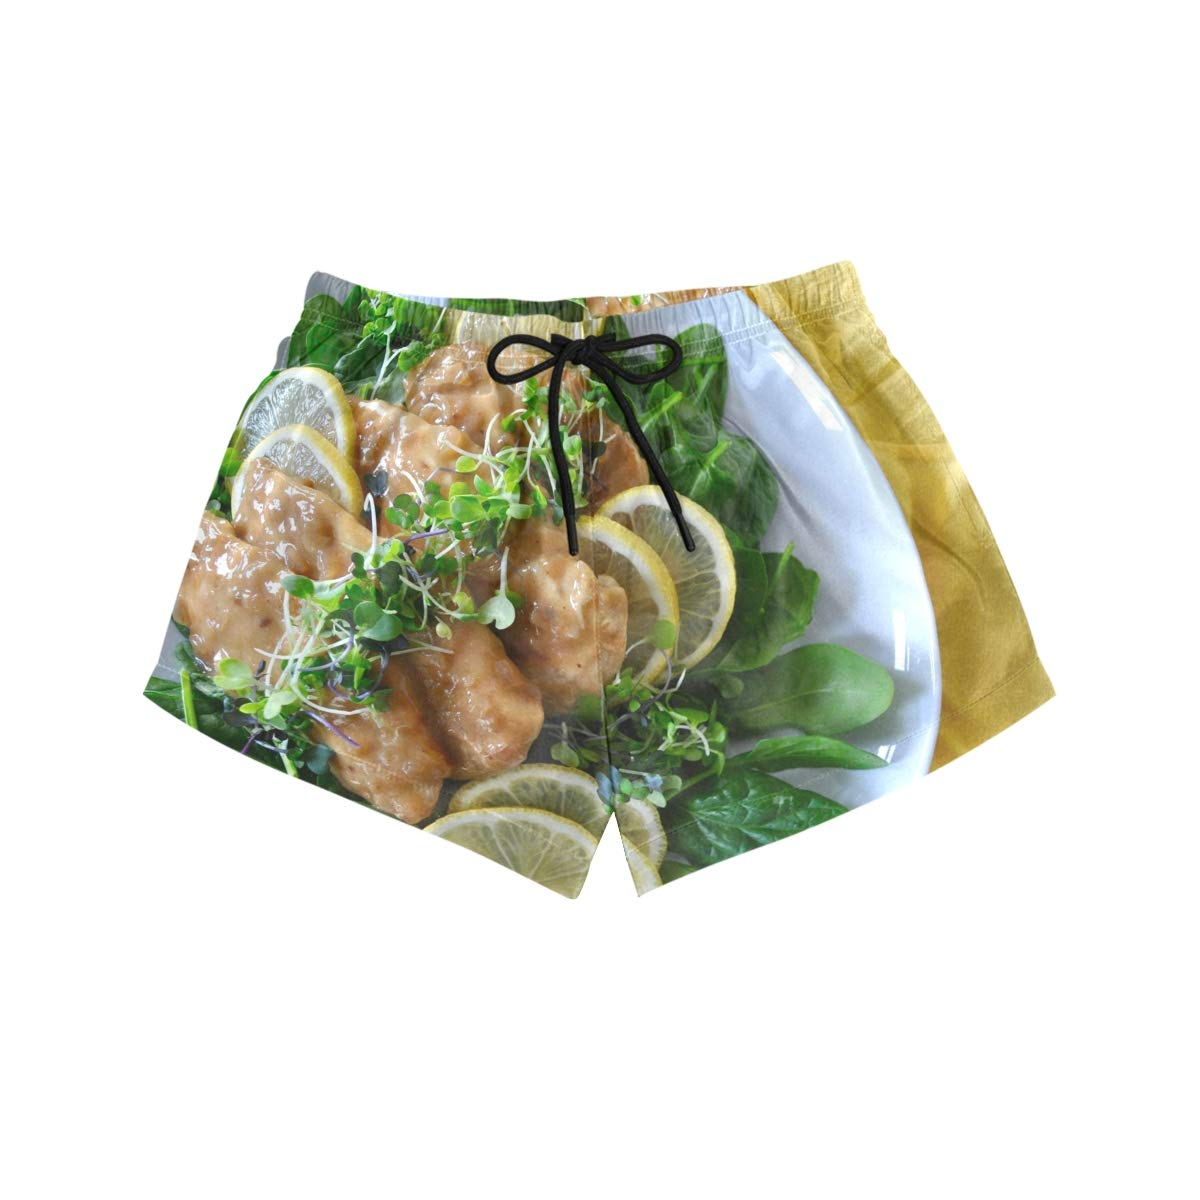 NWTSPY Unspecified 1 Chicken Entree Recipes Sofa Lemon Womens Sport Beach Swim Shorts Board Shorts Swimsuit with Mesh Lining